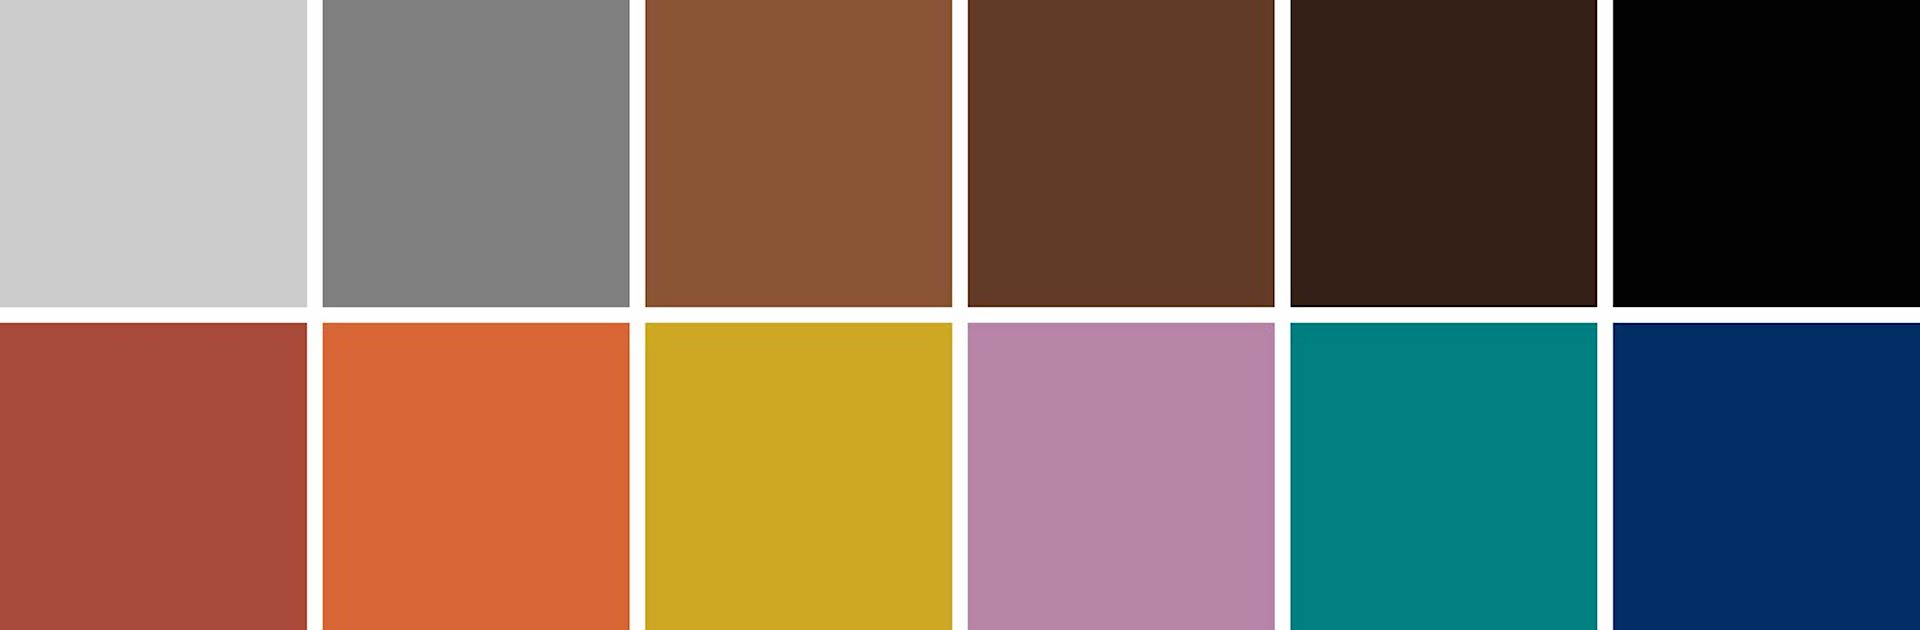 Warm unsaturated Mid-Century Modern color palette